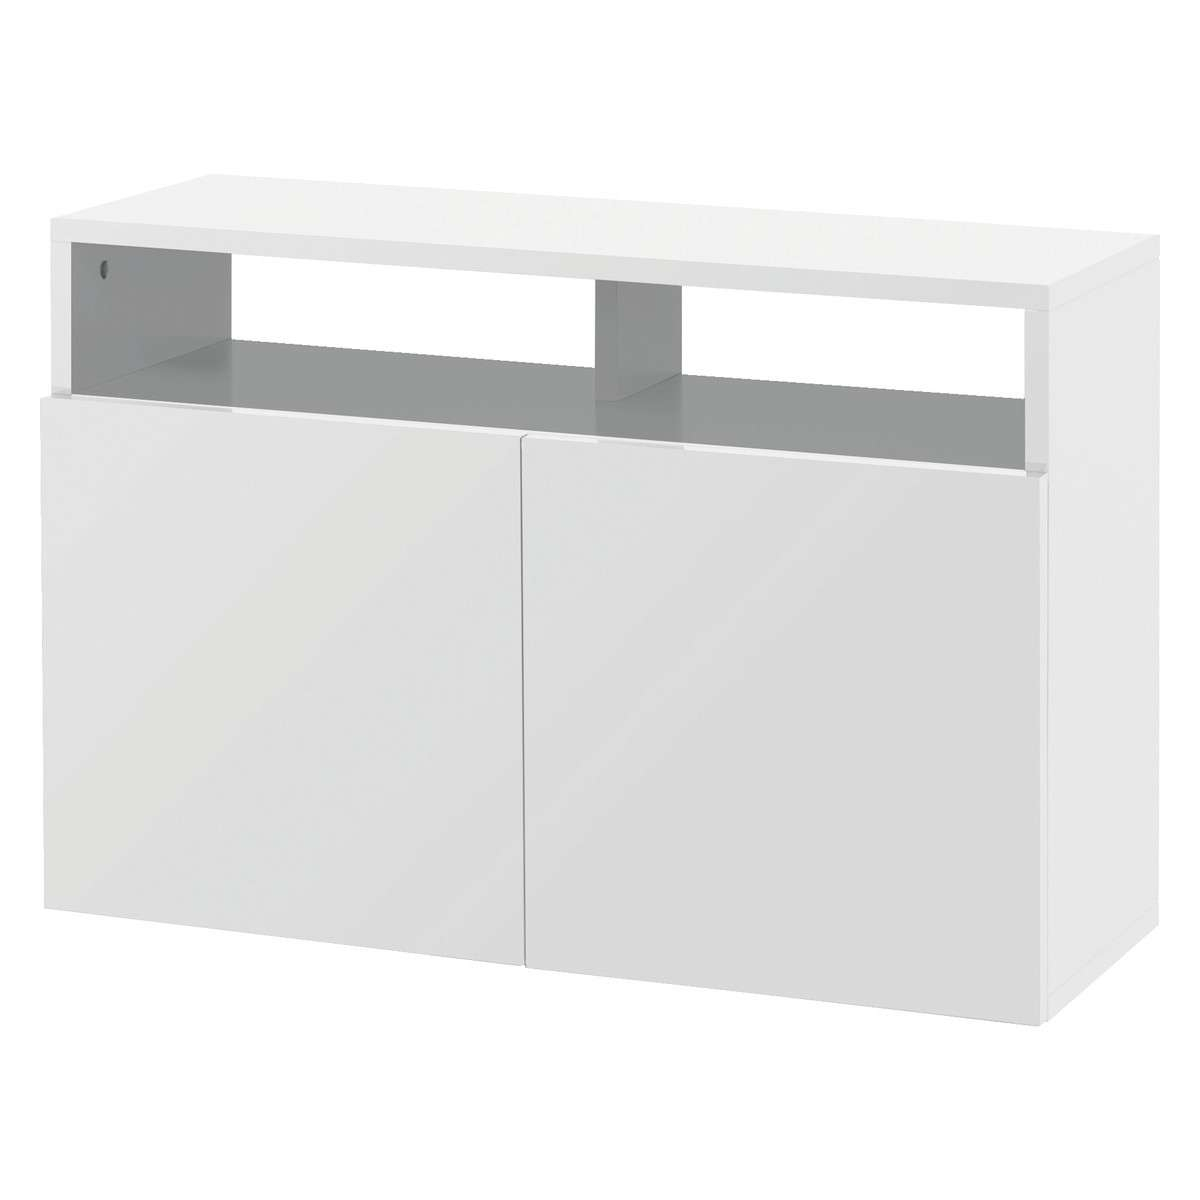 Kubrik White High Gloss Small Sideboard | Buy Now At Habitat Uk With High Gloss Sideboards (Gallery 9 of 20)